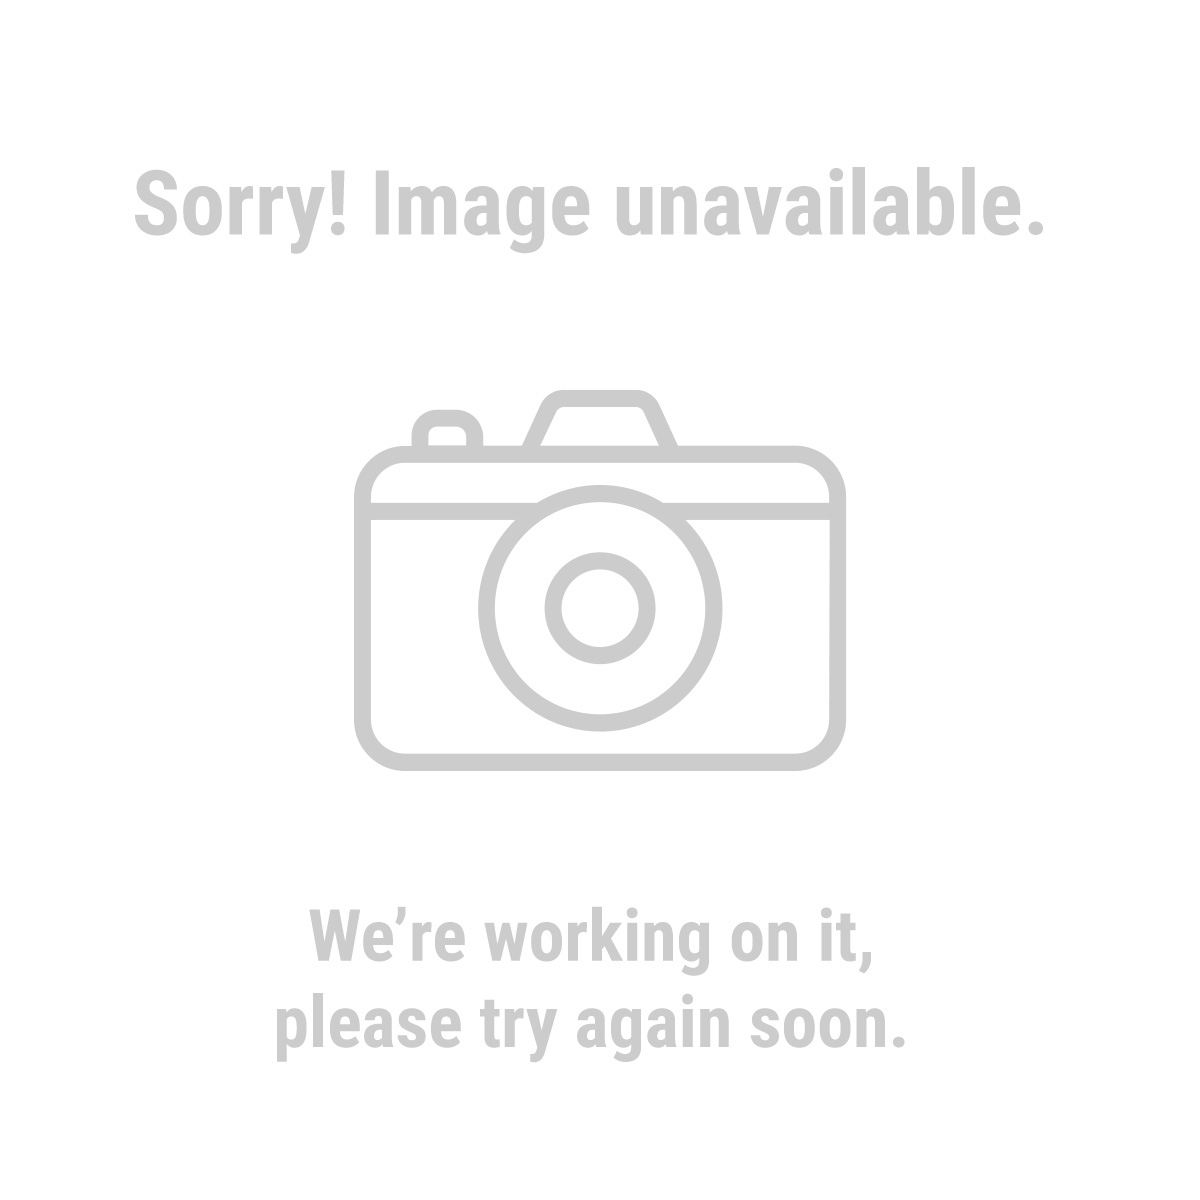 Pittsburgh Professional 96075 6 Piece Precision Electrical Screwdriver Set